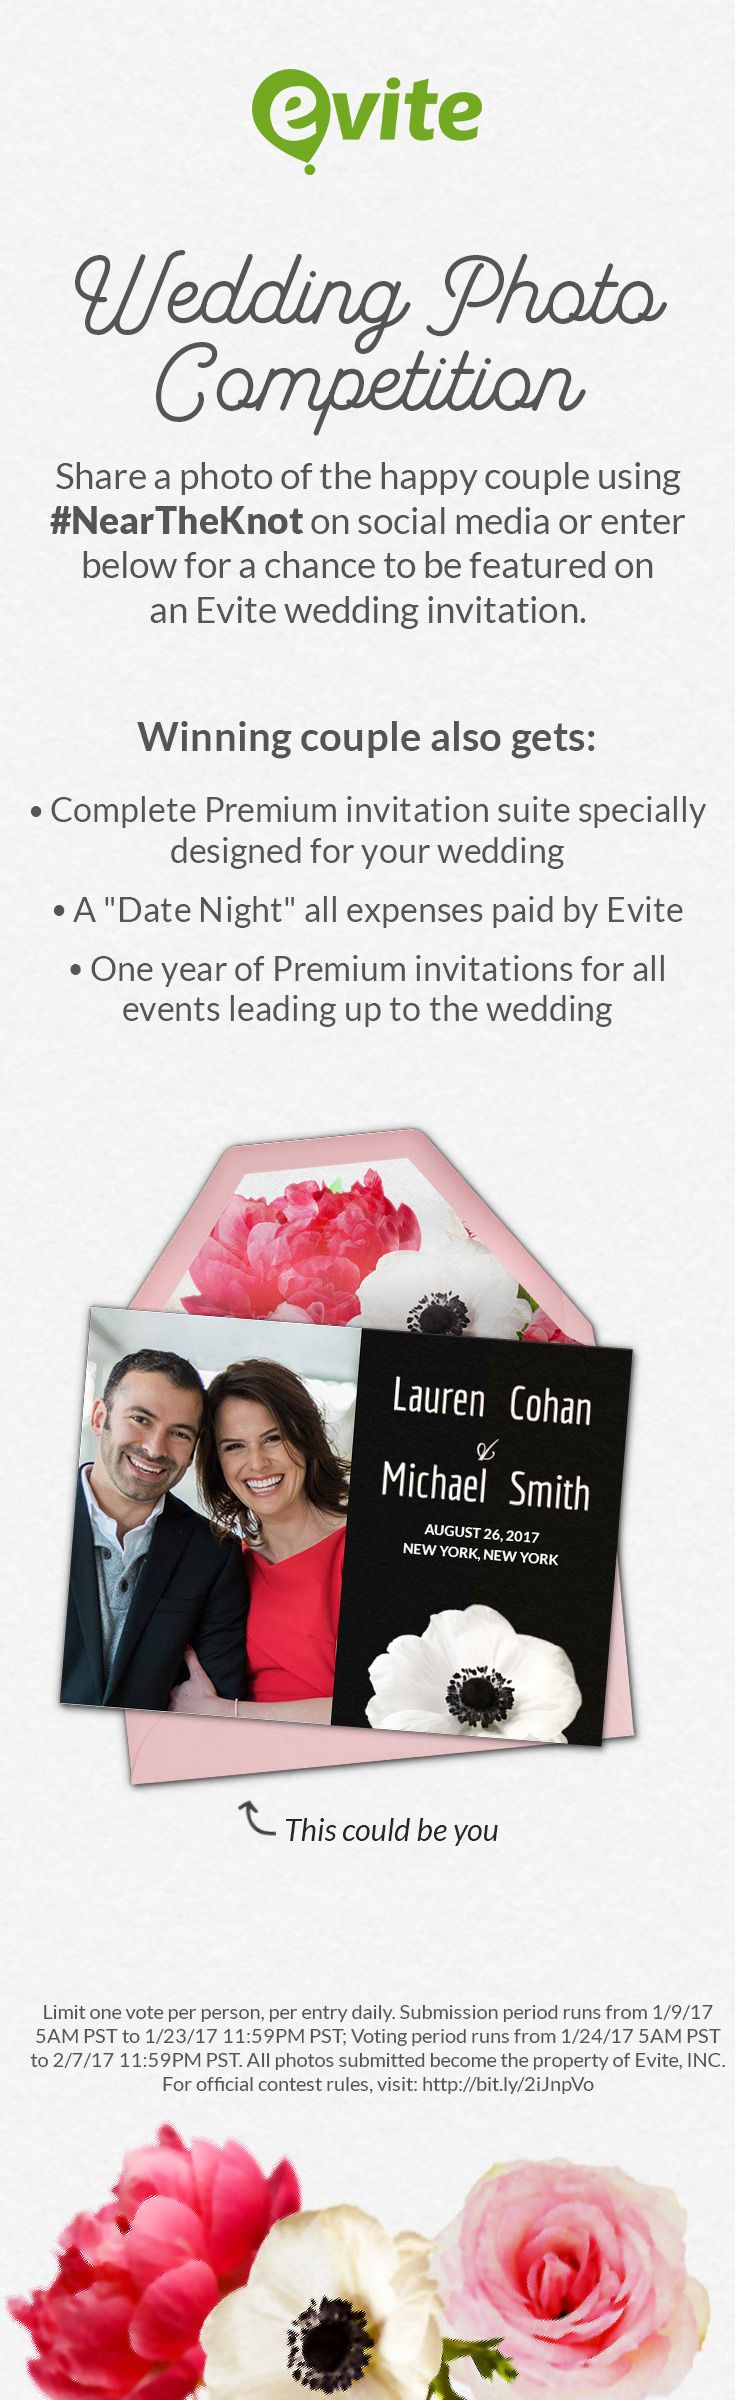 custom evite invitations | Inviview.co